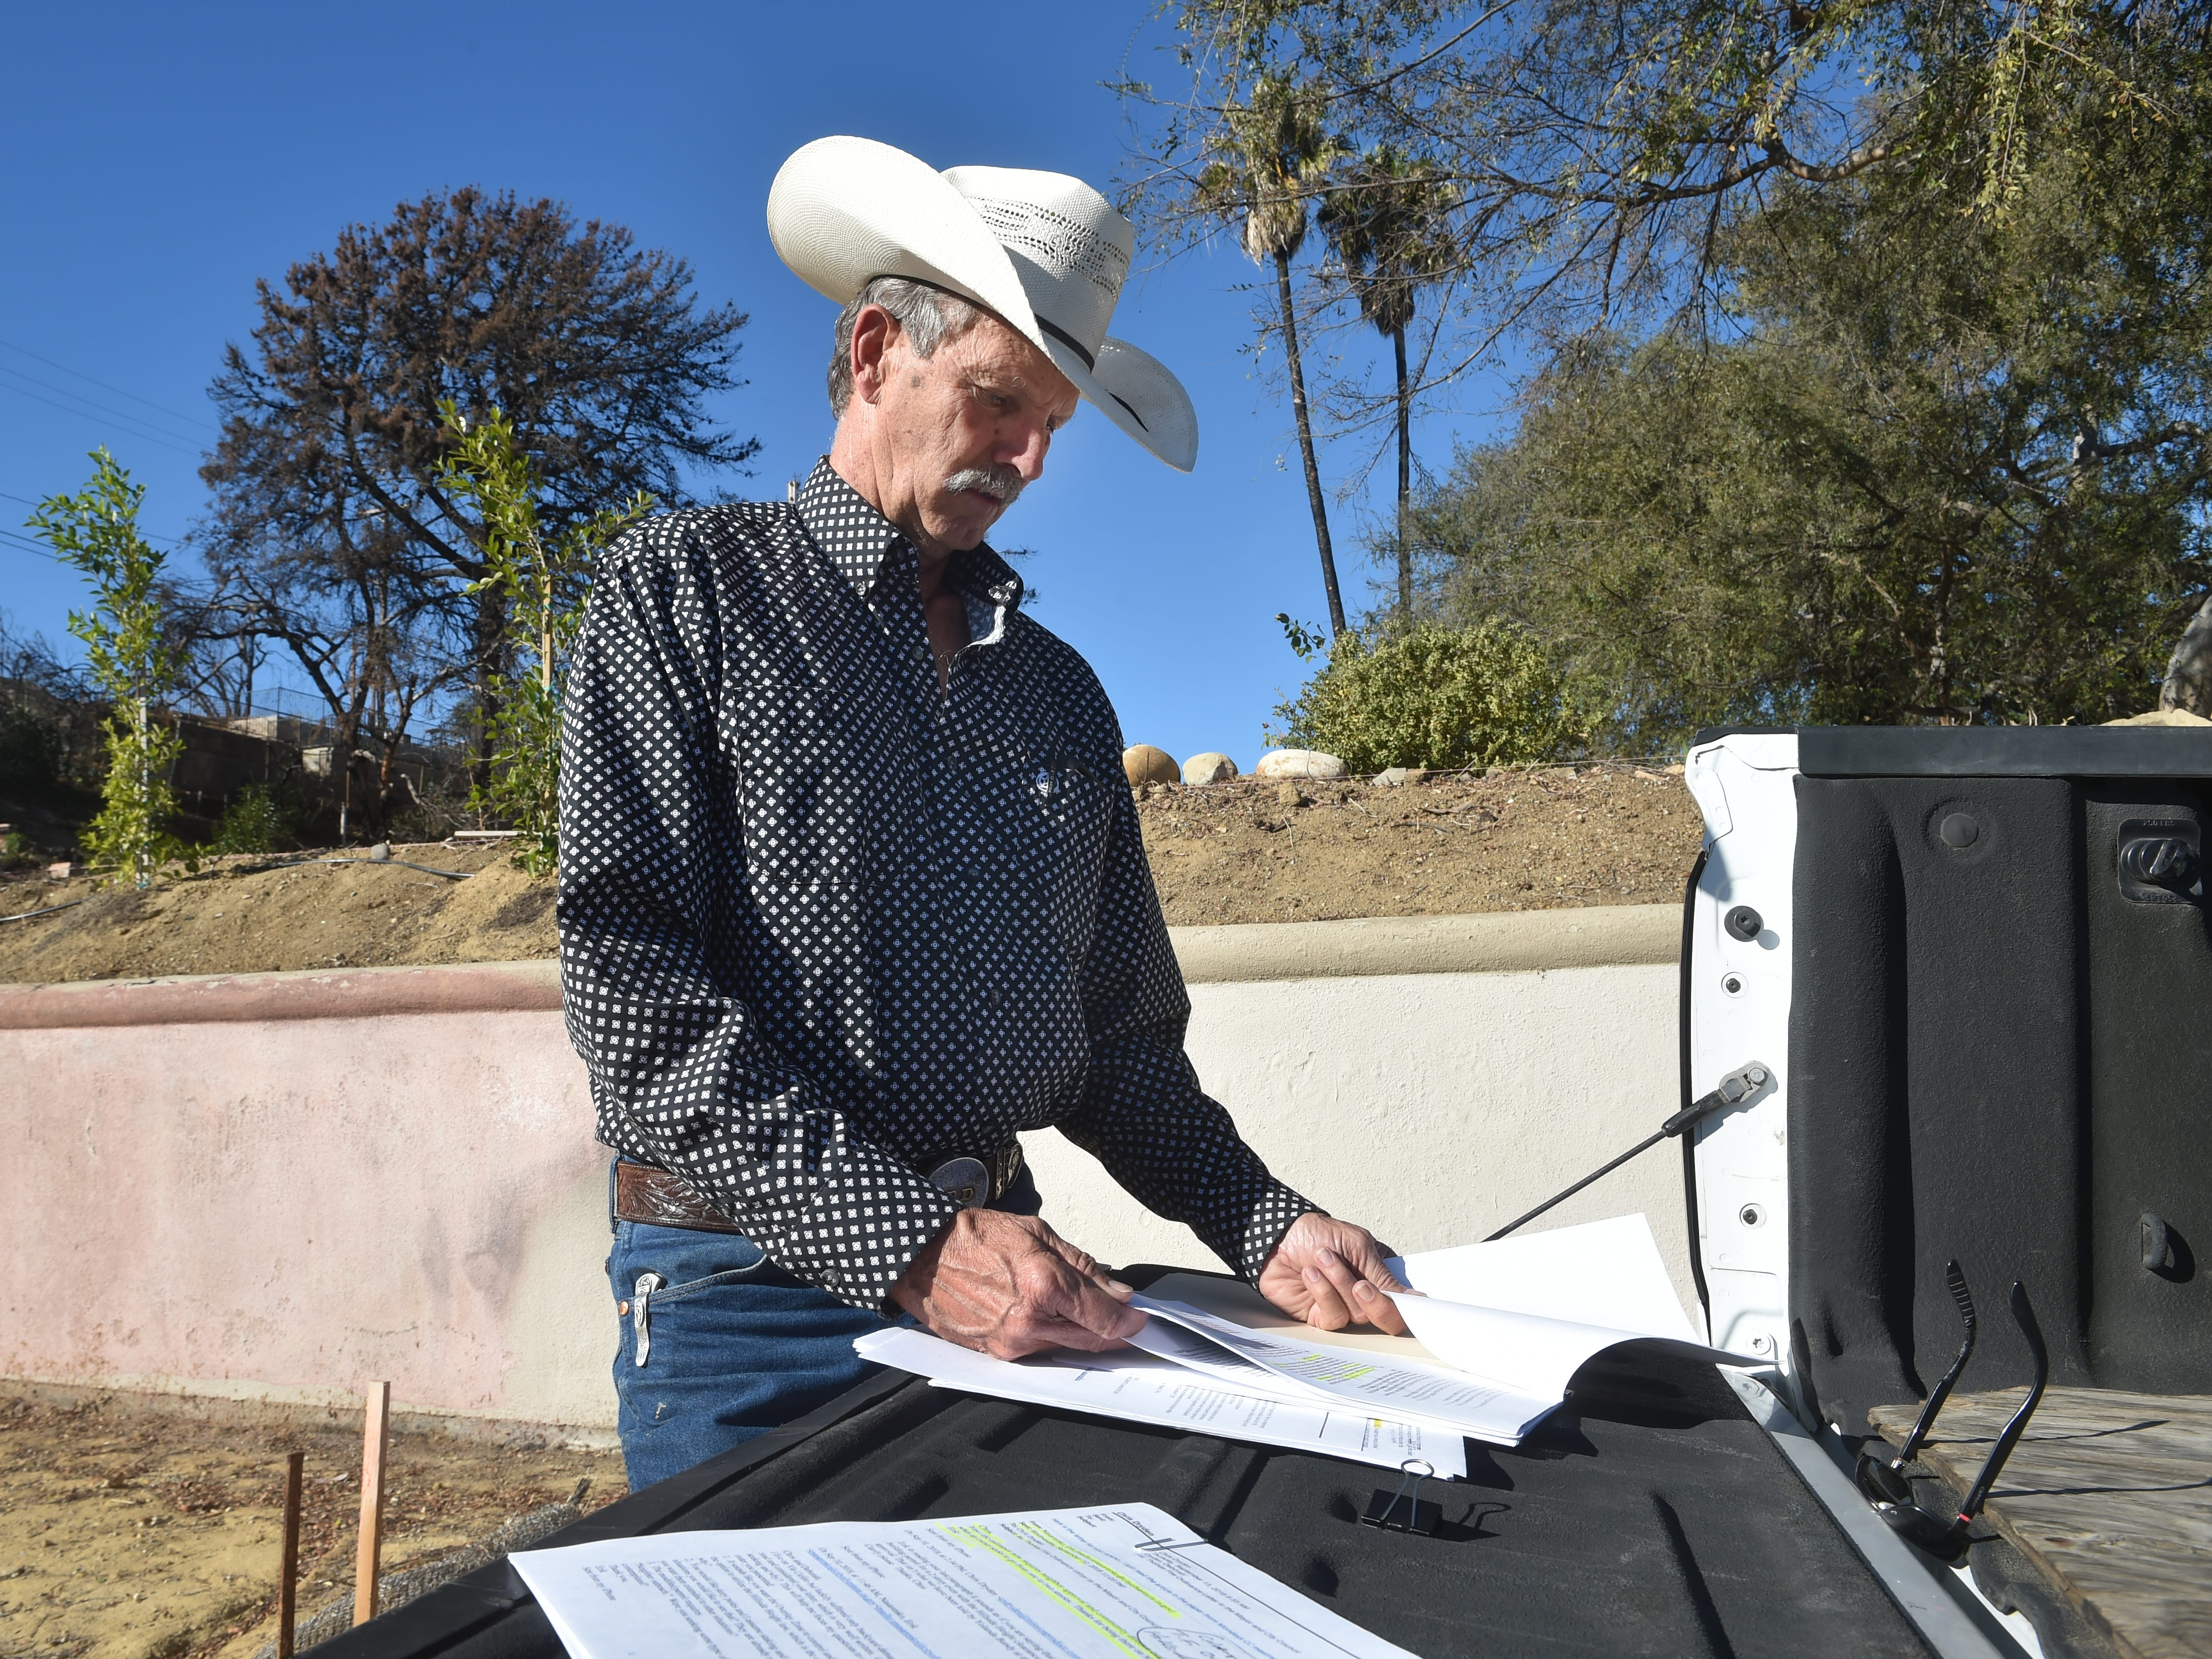 Chris Dryden, of Ventura, visits the lot on Colina Vista where his home burned in the Thomas Fire. While many of his neighbors have chosen sell the lots where their homes once stood, Dryden and his family are determined to rebuild despite obstacles.